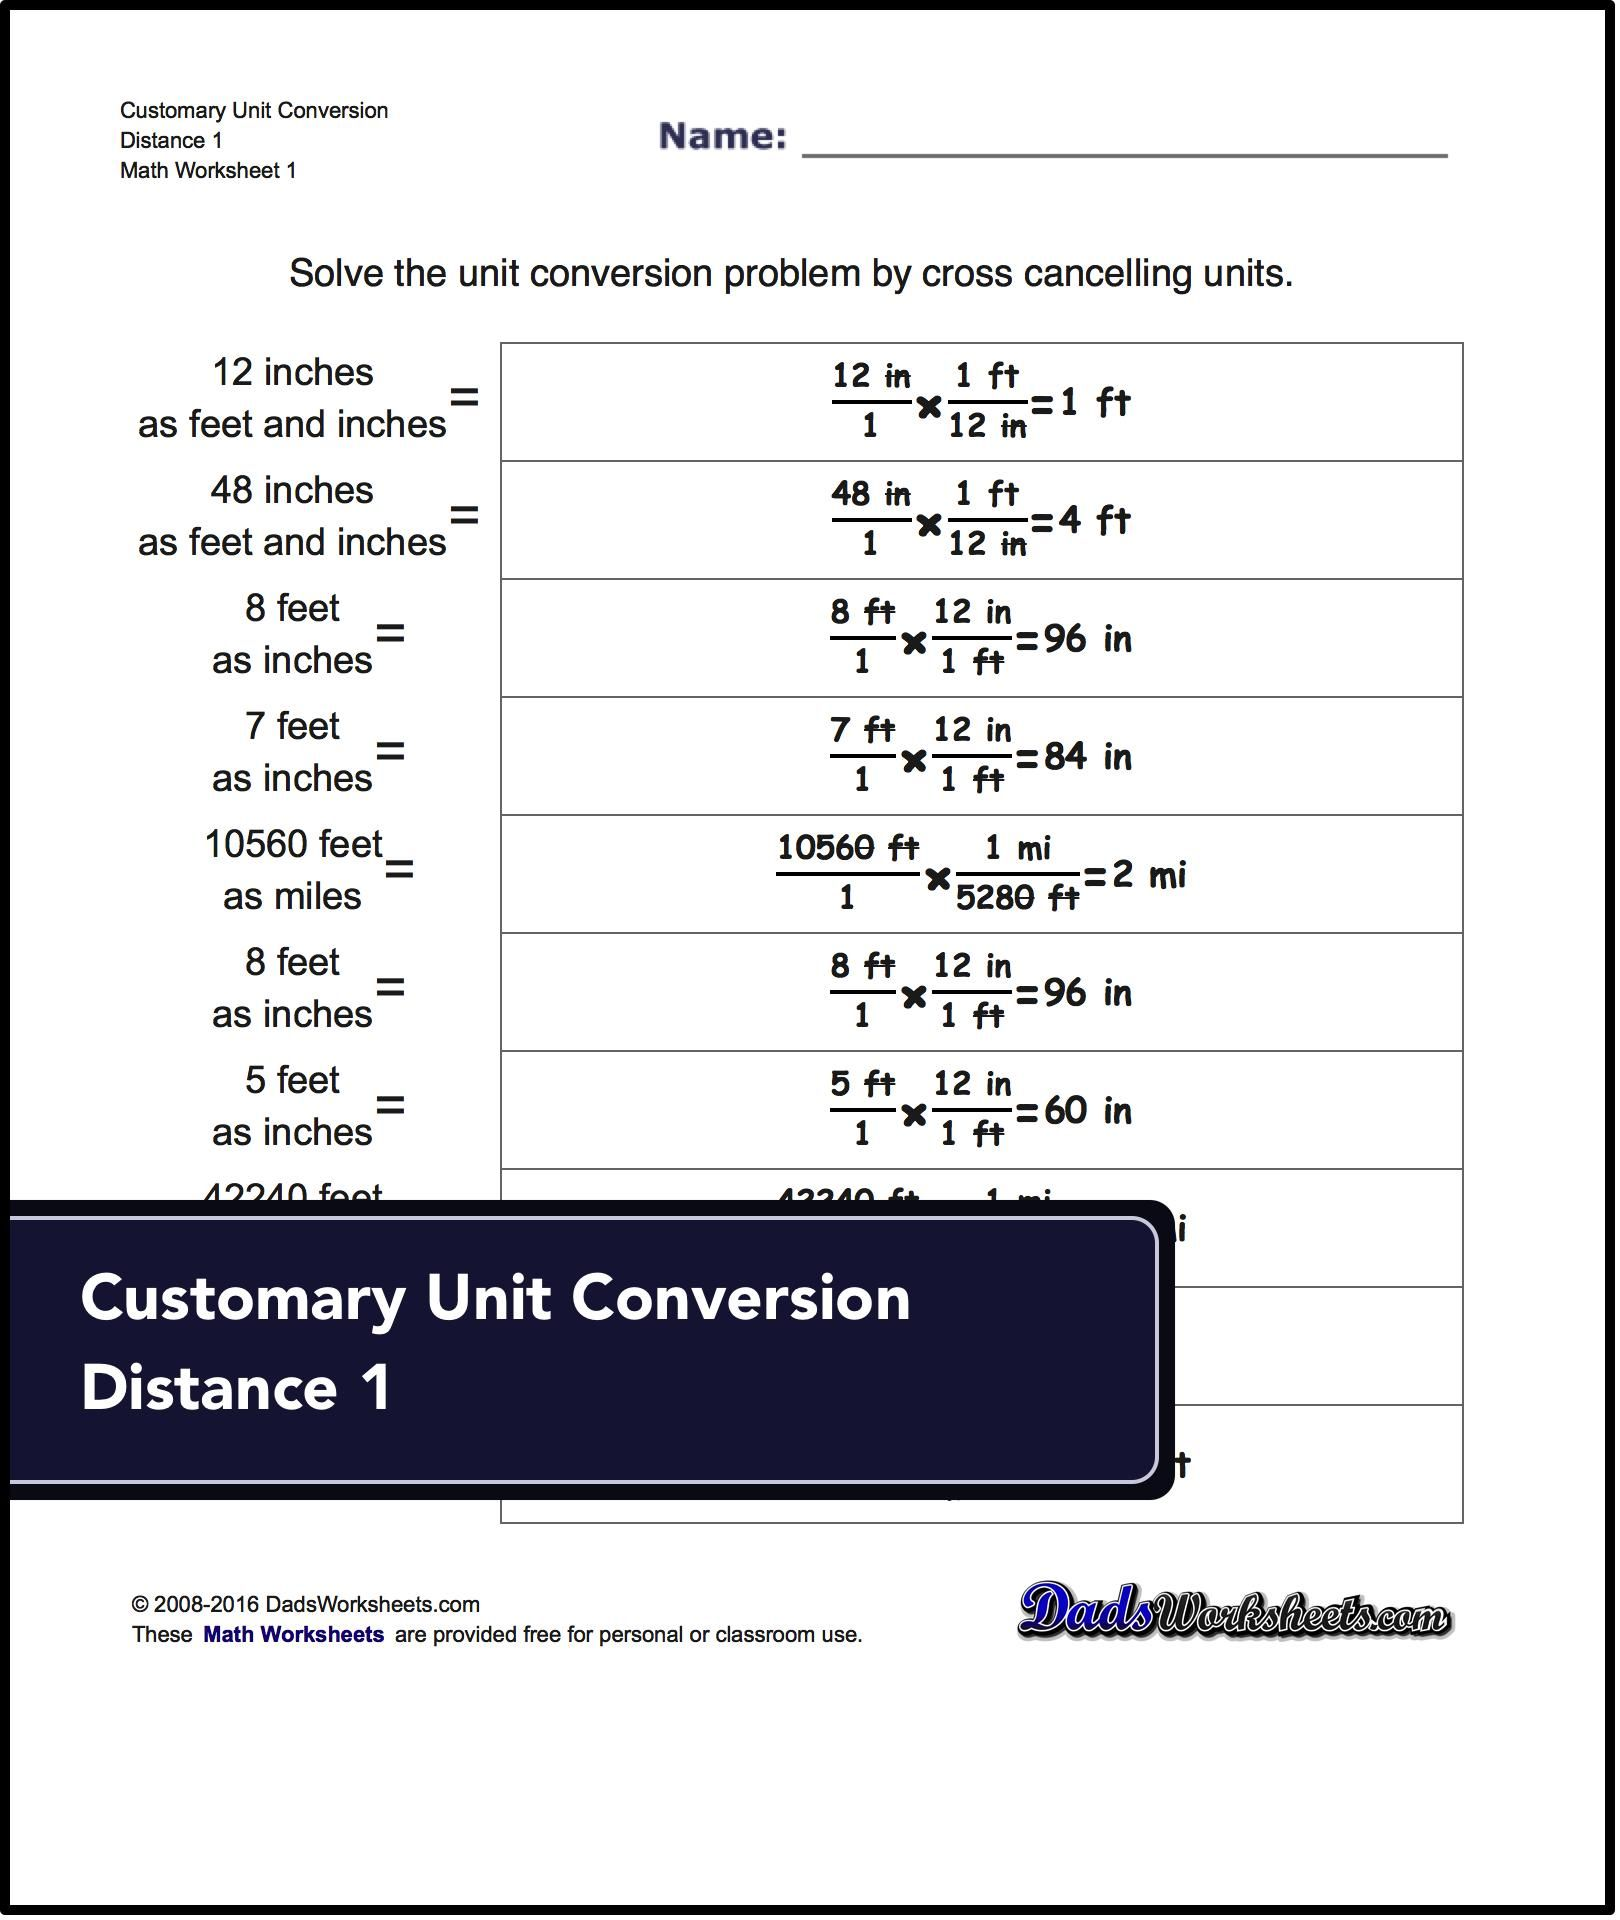 worksheet Si Unit Conversion Worksheet unit conversion worksheets for converting customary mass units including ounces pounds and tons